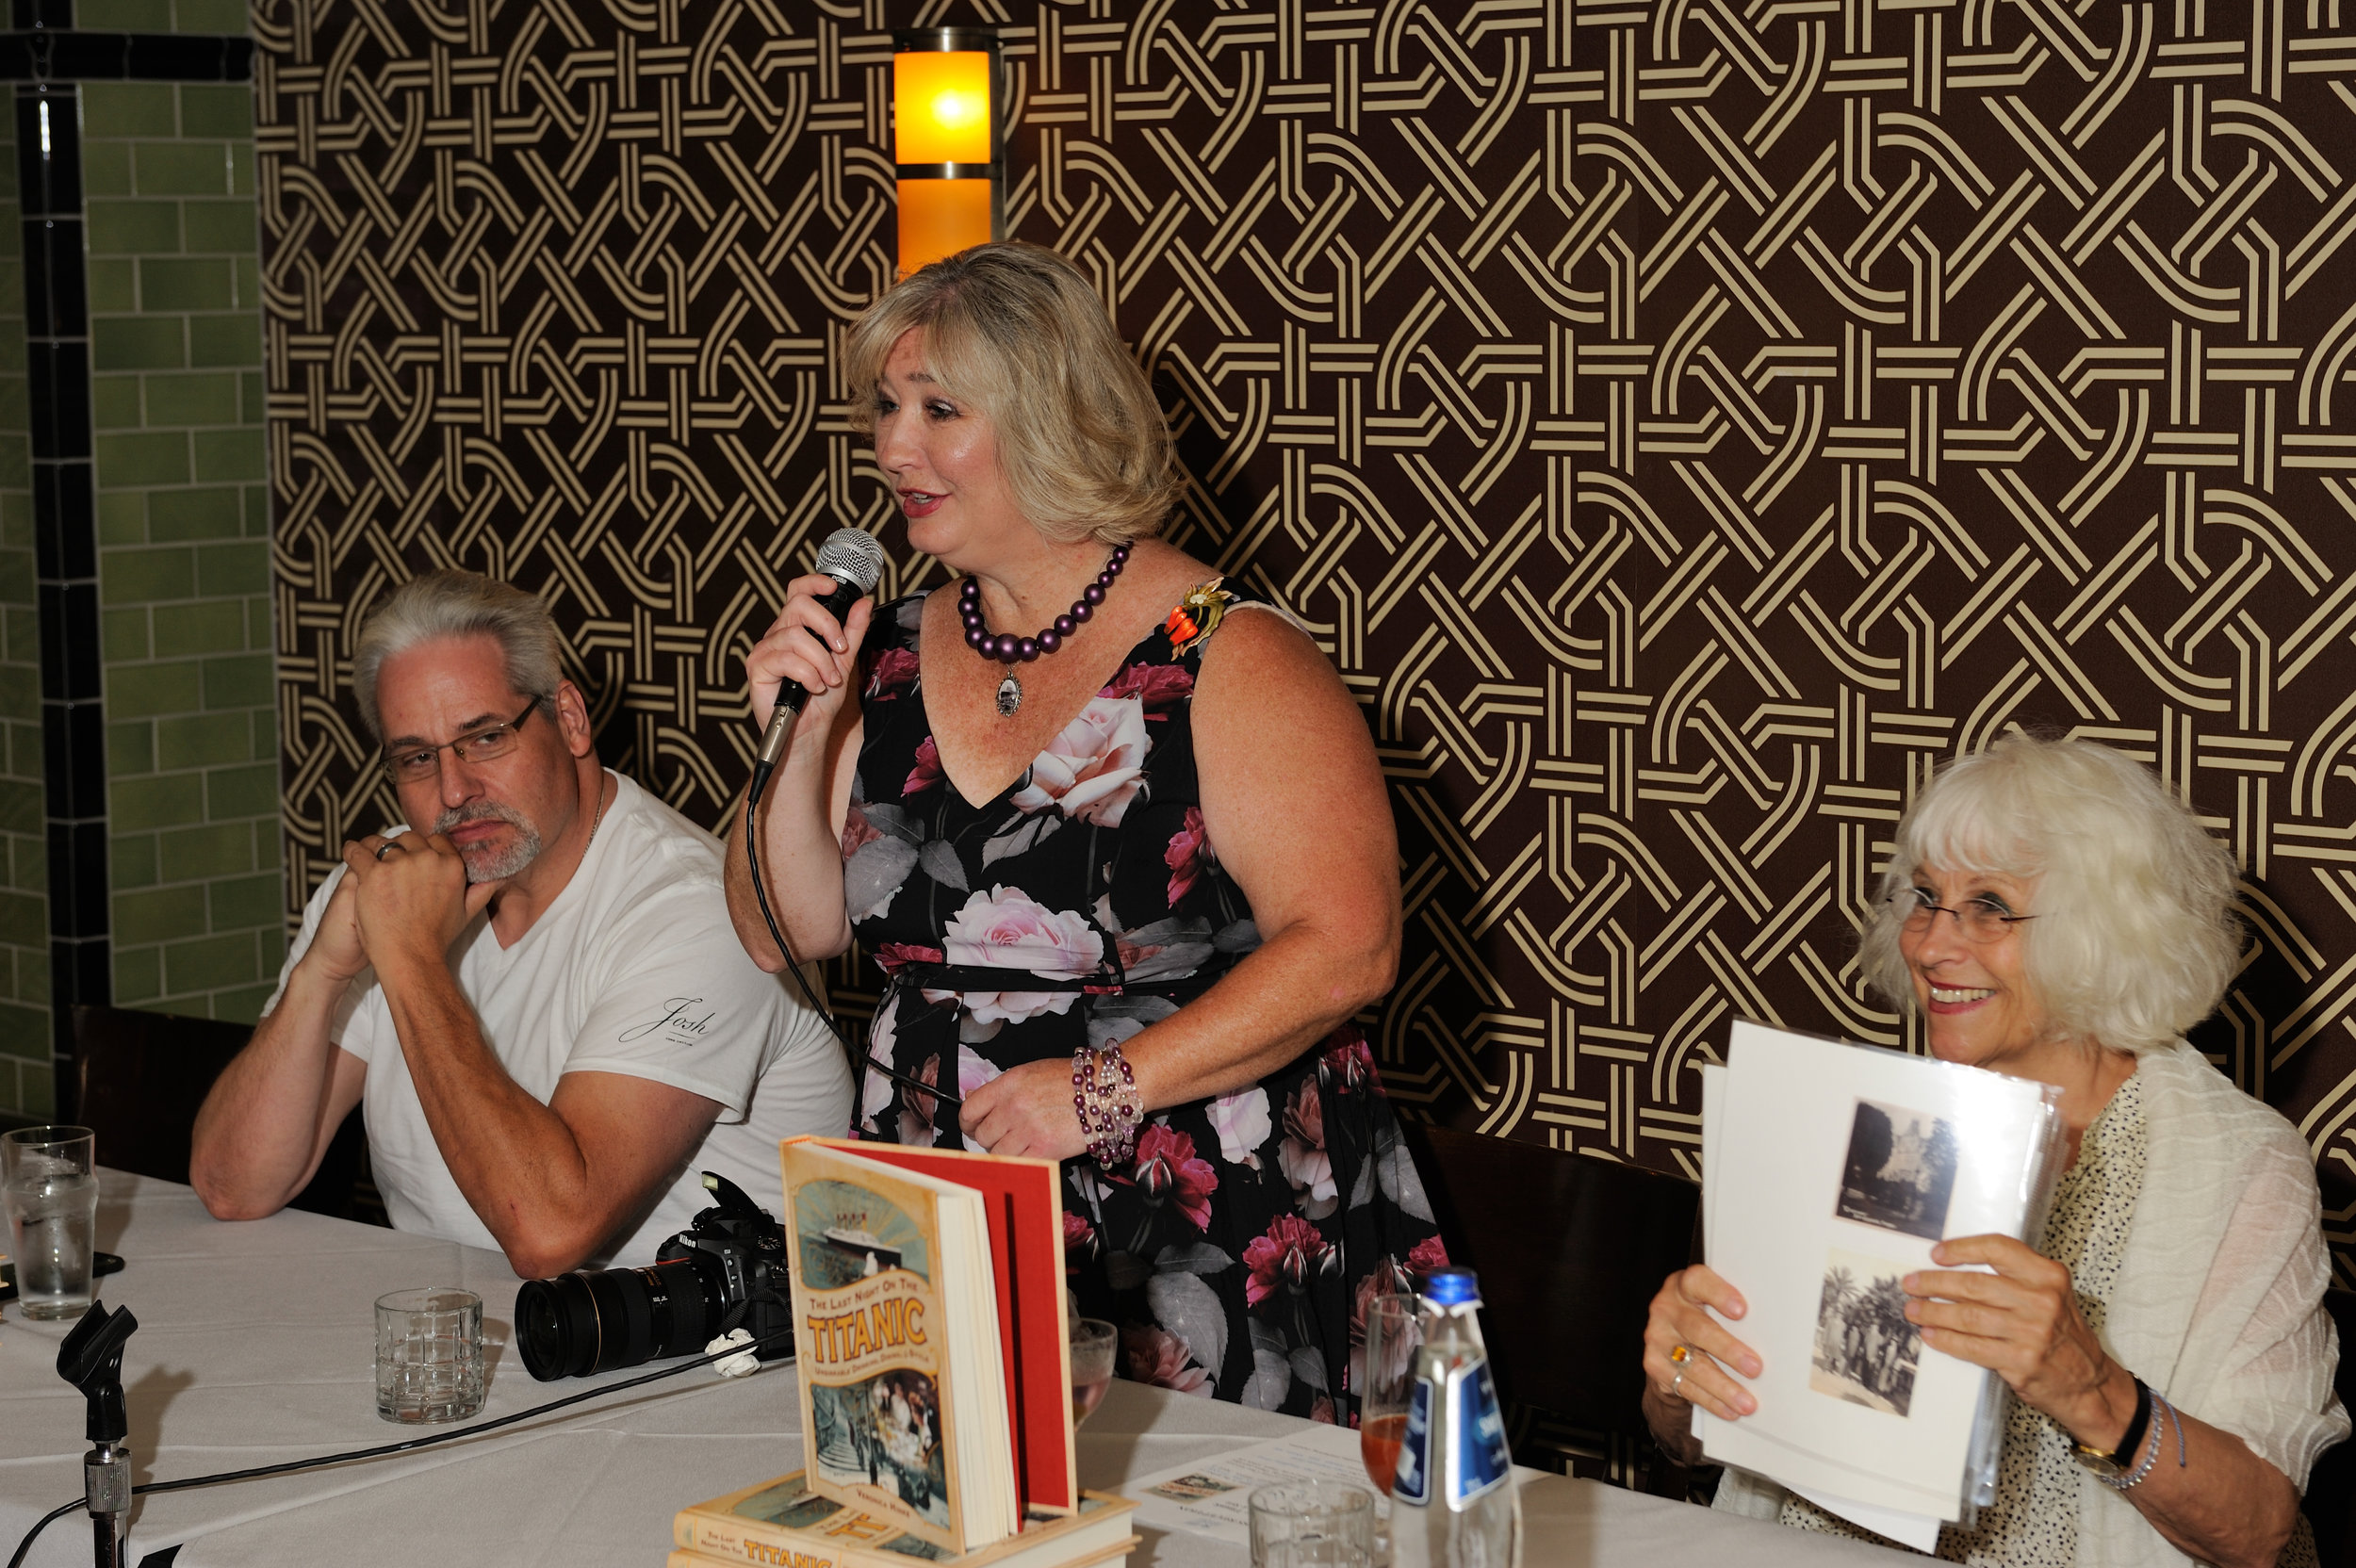 Veronica Hinke (center) at The Gage in Chicago for a book event